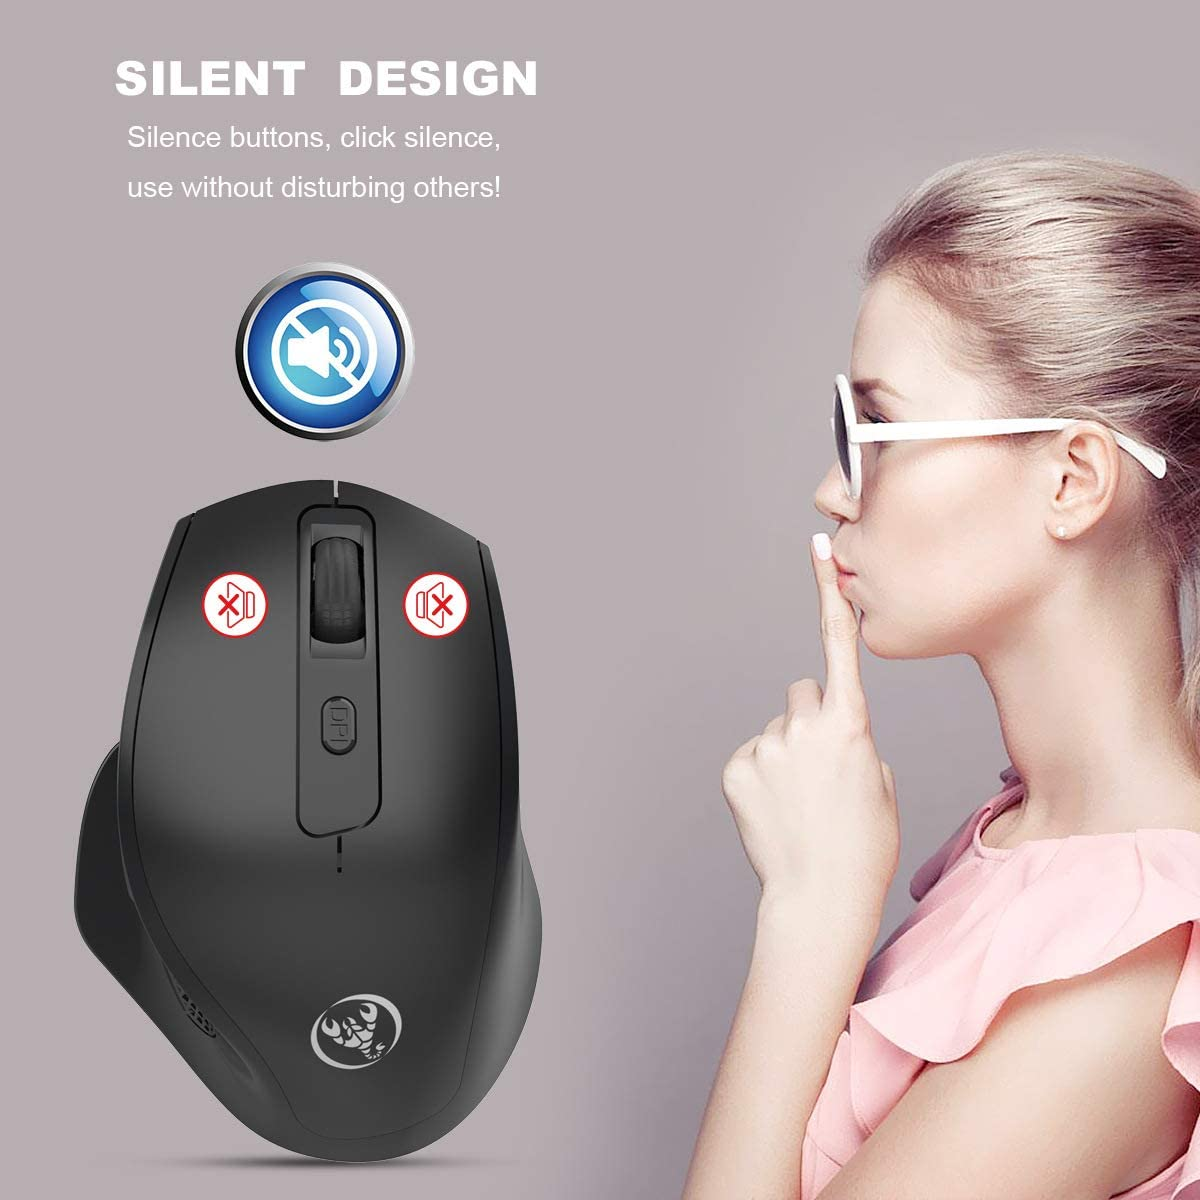 Vertical Wireless Silent Rechargeable Mouse 6 Button Wireless Mouse 2400dpi Adjustable Health Mouse